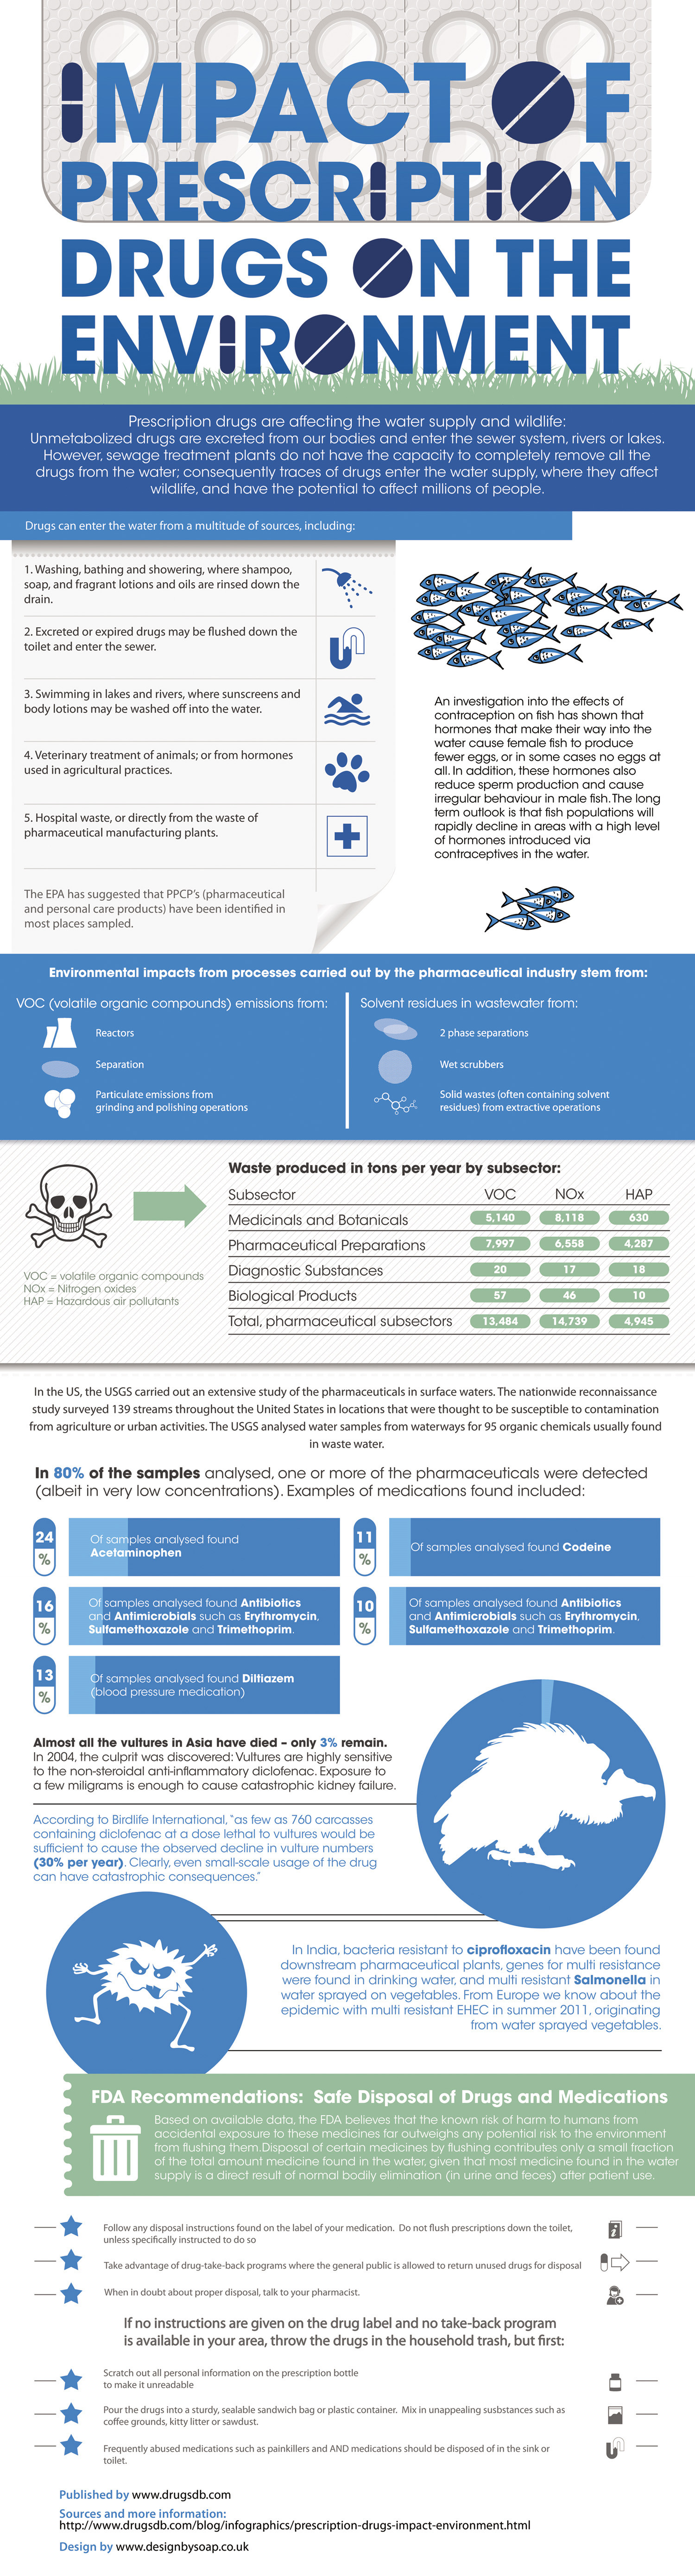 Impact of Prescription Drugs on the Environment Infographic